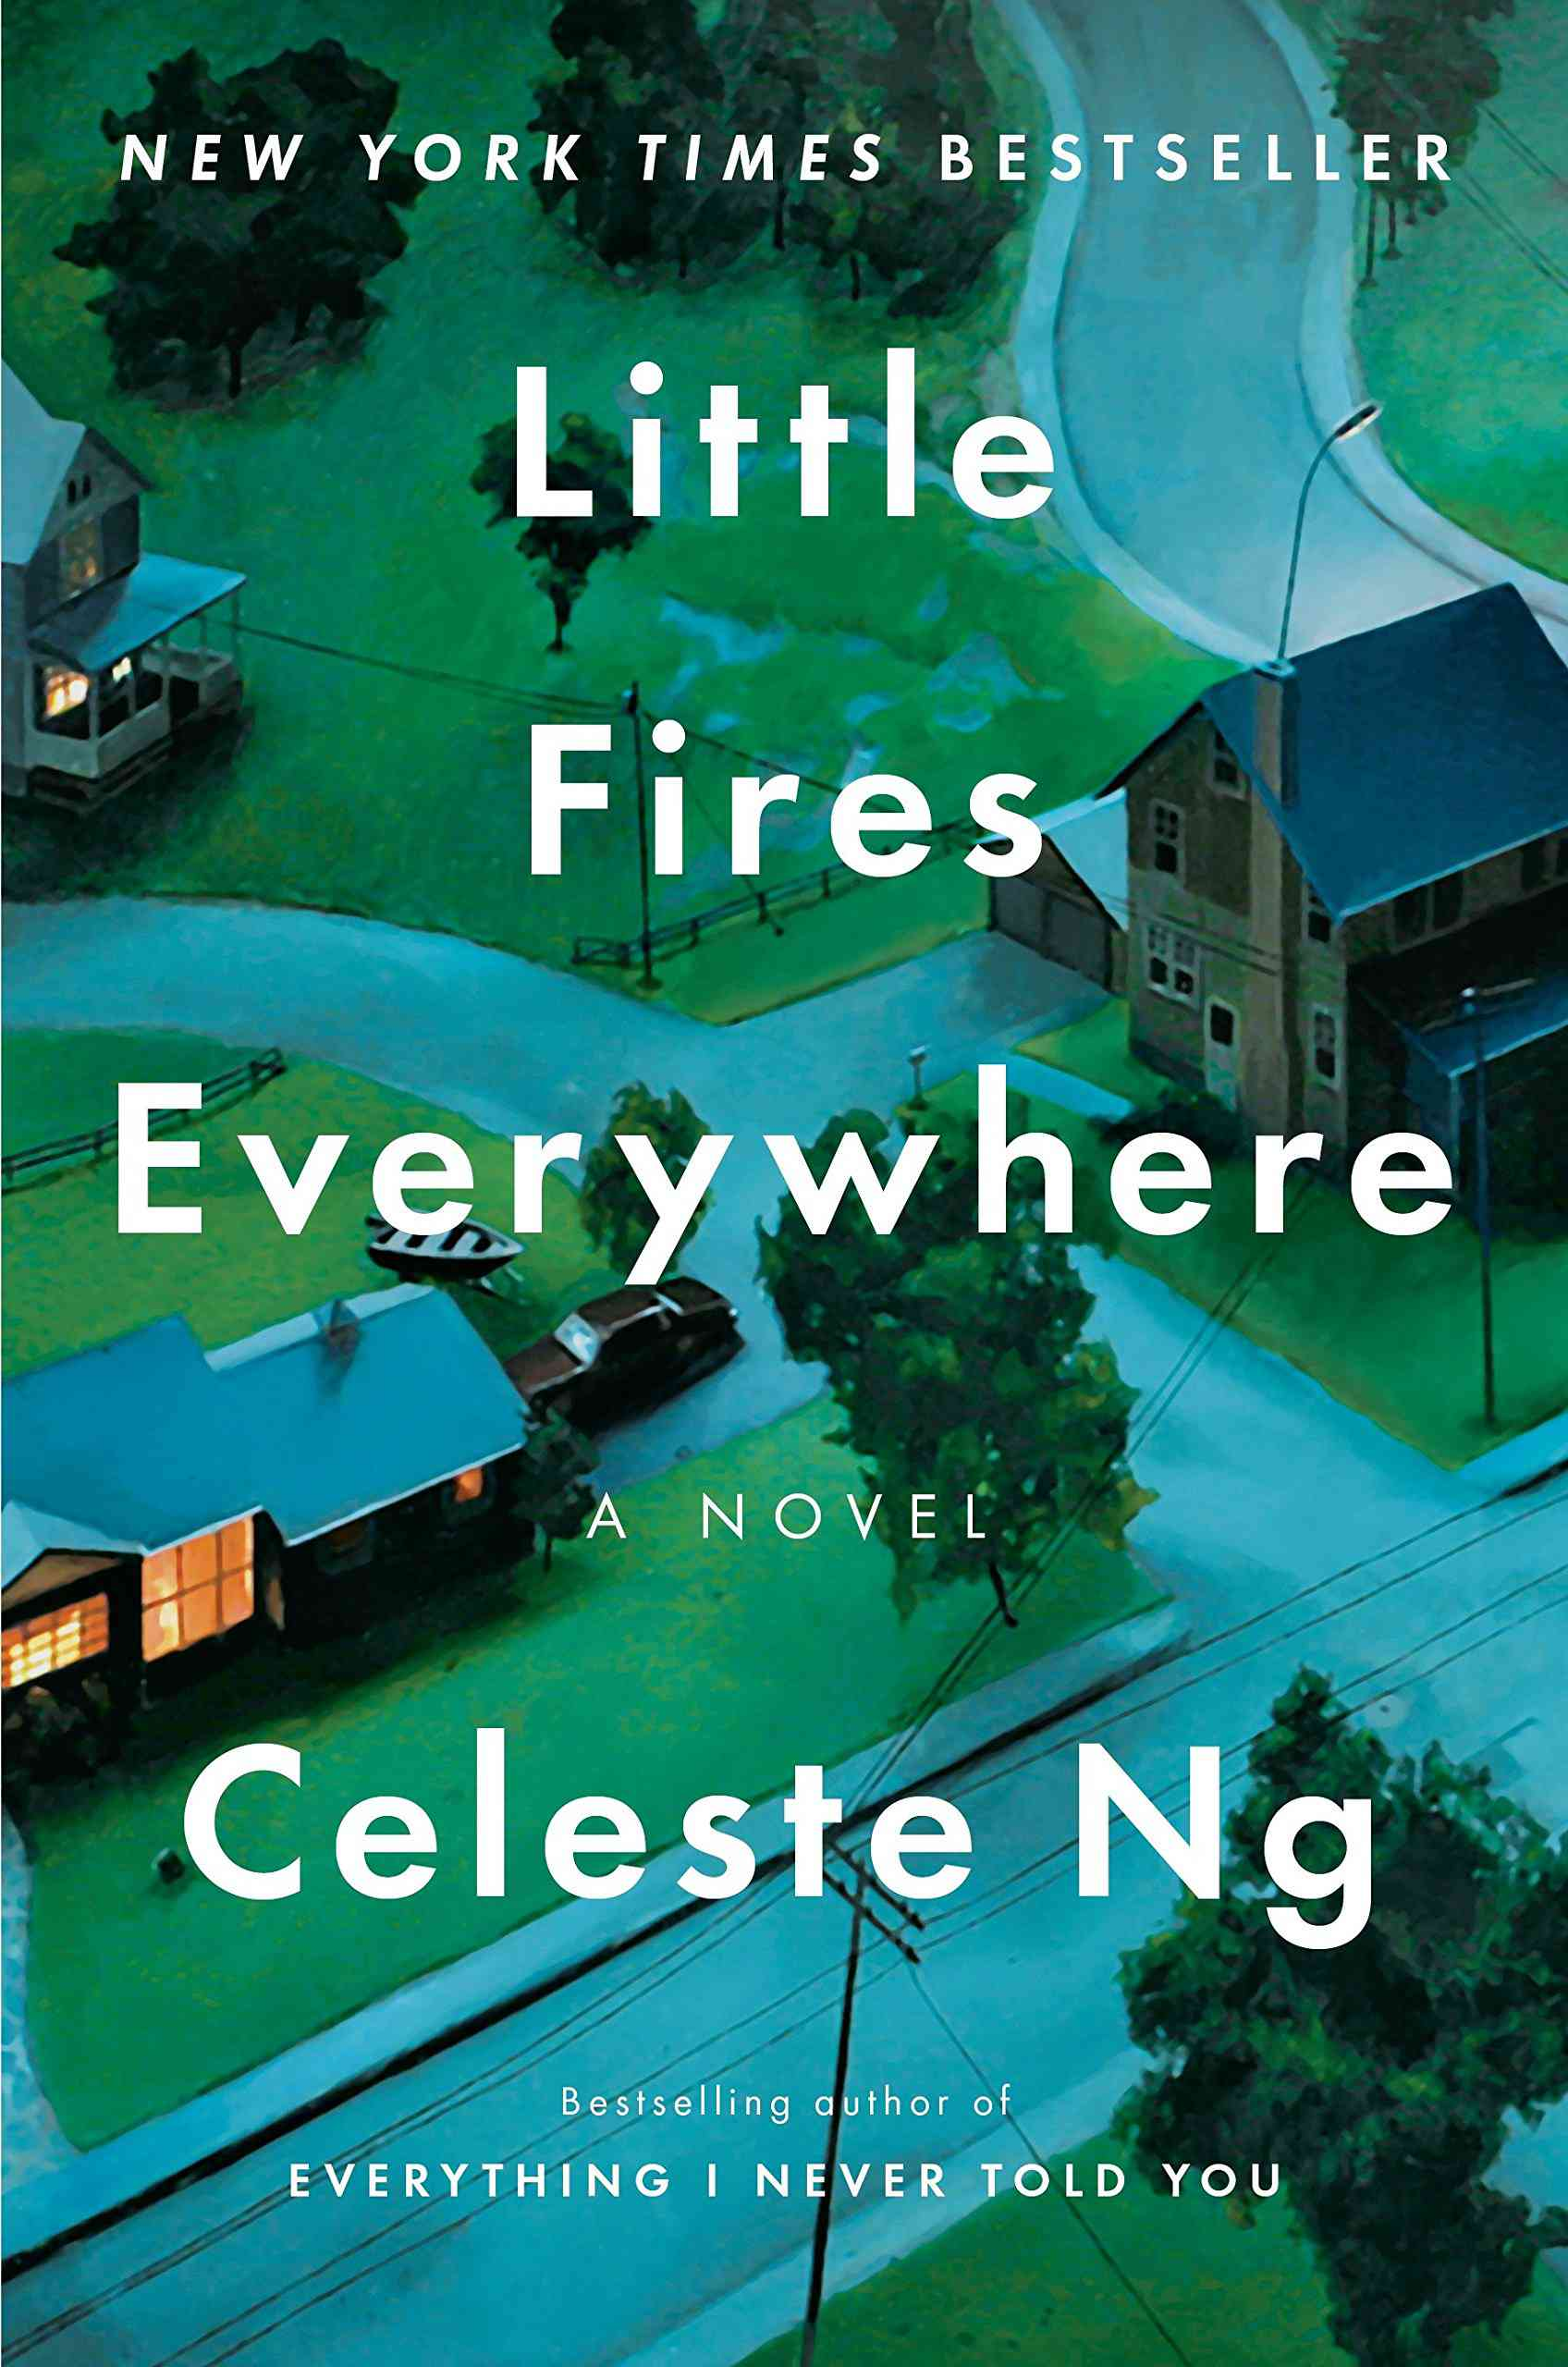 A book cover featuring model homes, entitled Little Fires Everywhere.